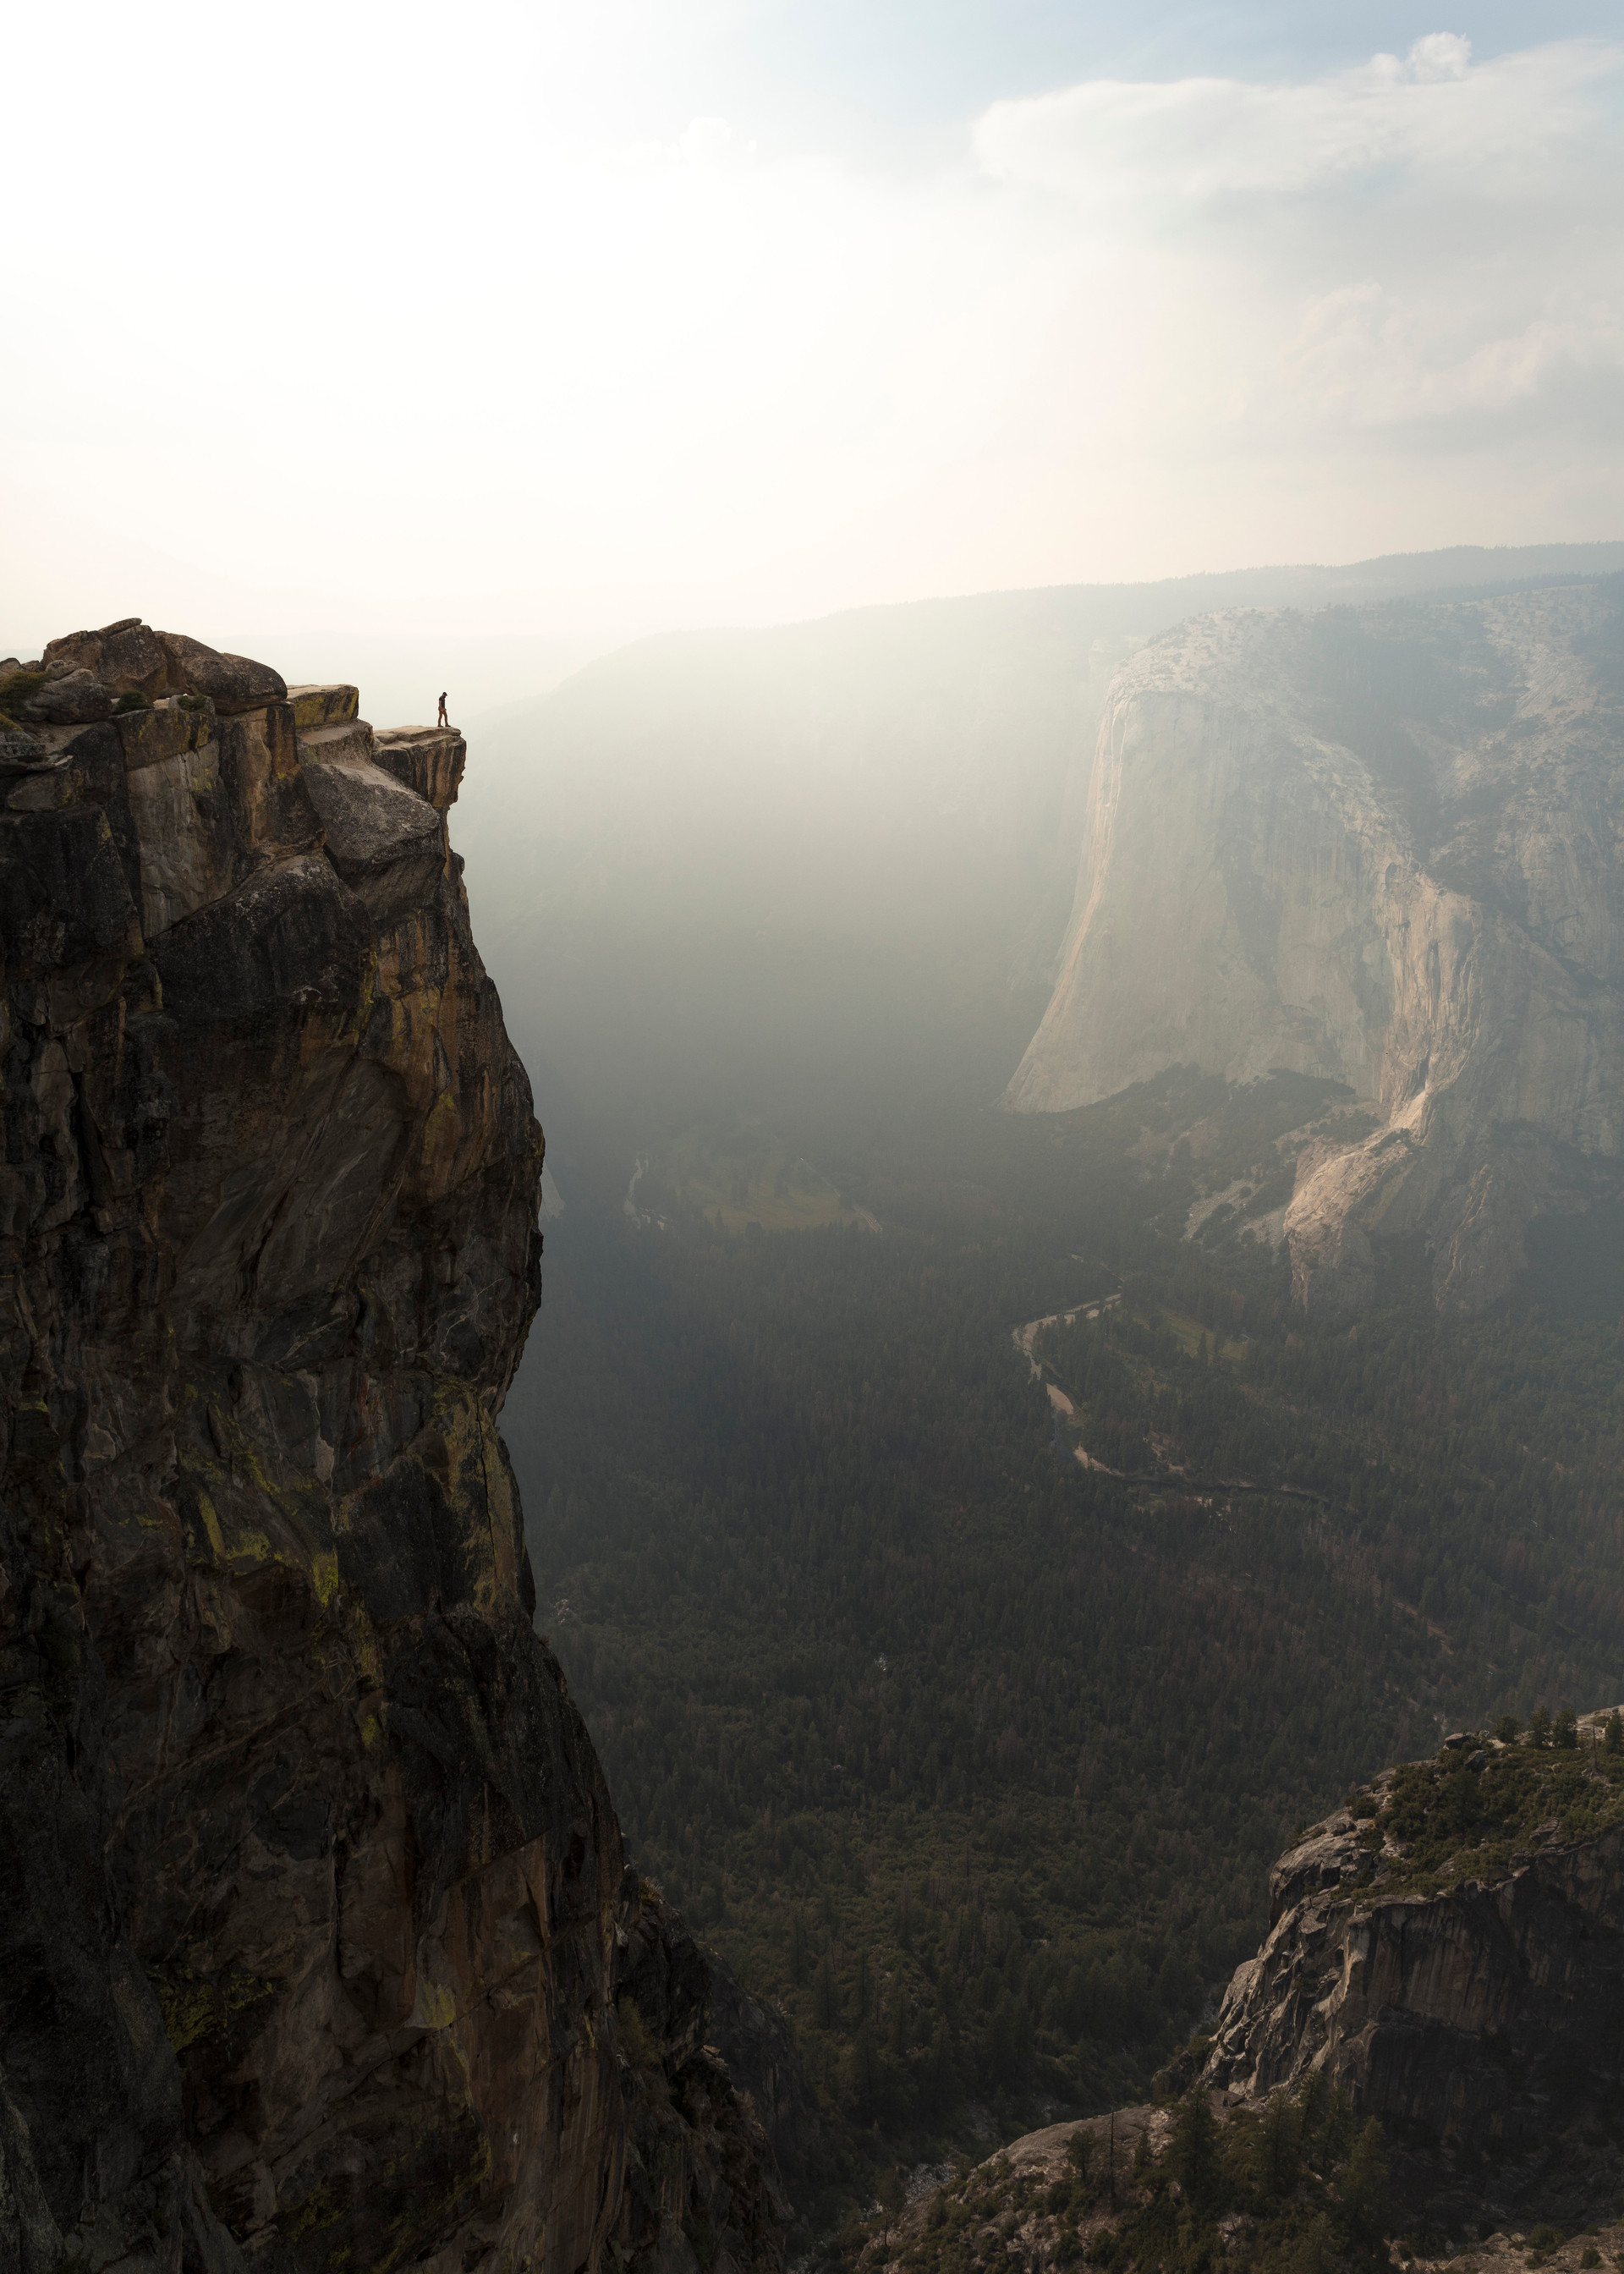 Don't look down to Yosemite Valley...